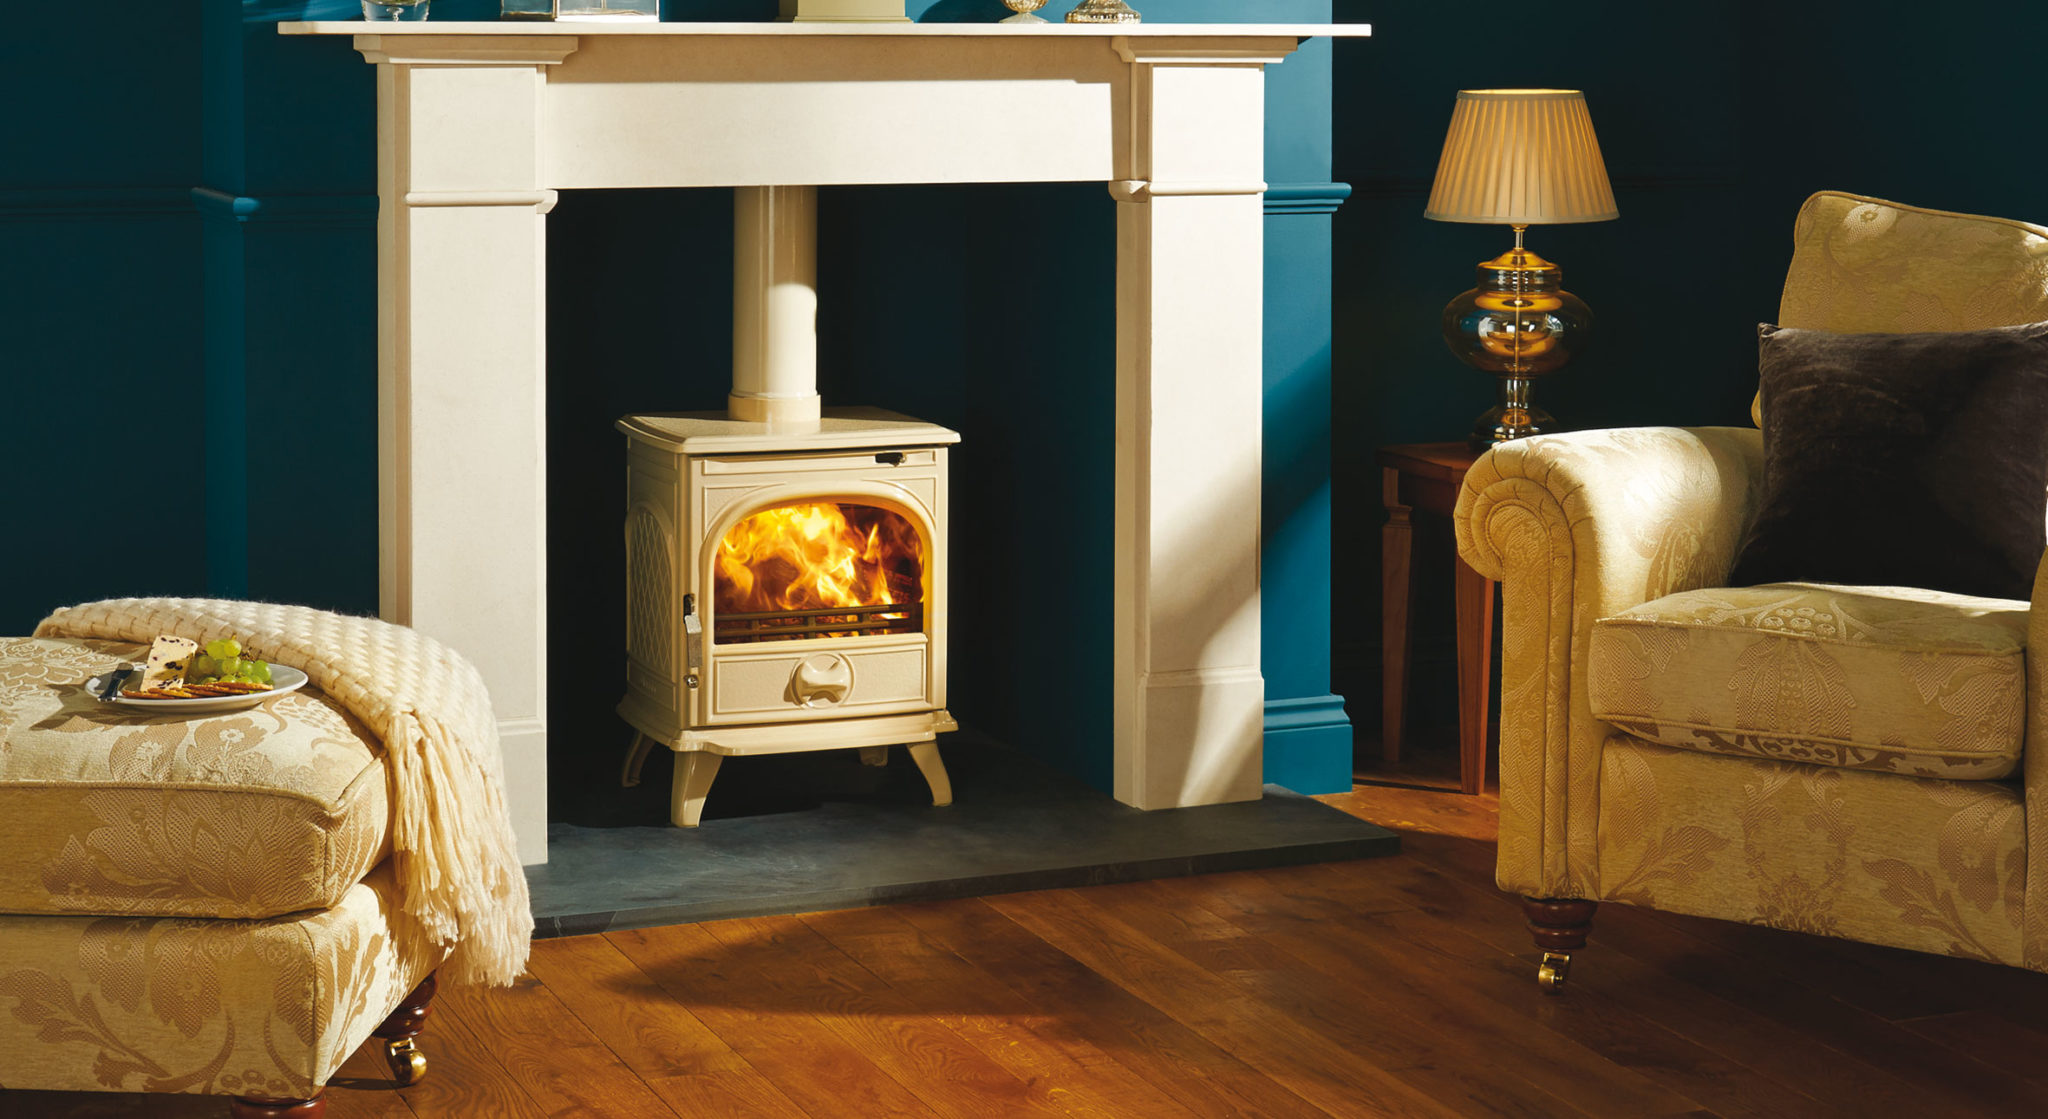 Alluring flames and warmth from a Dovre Stove